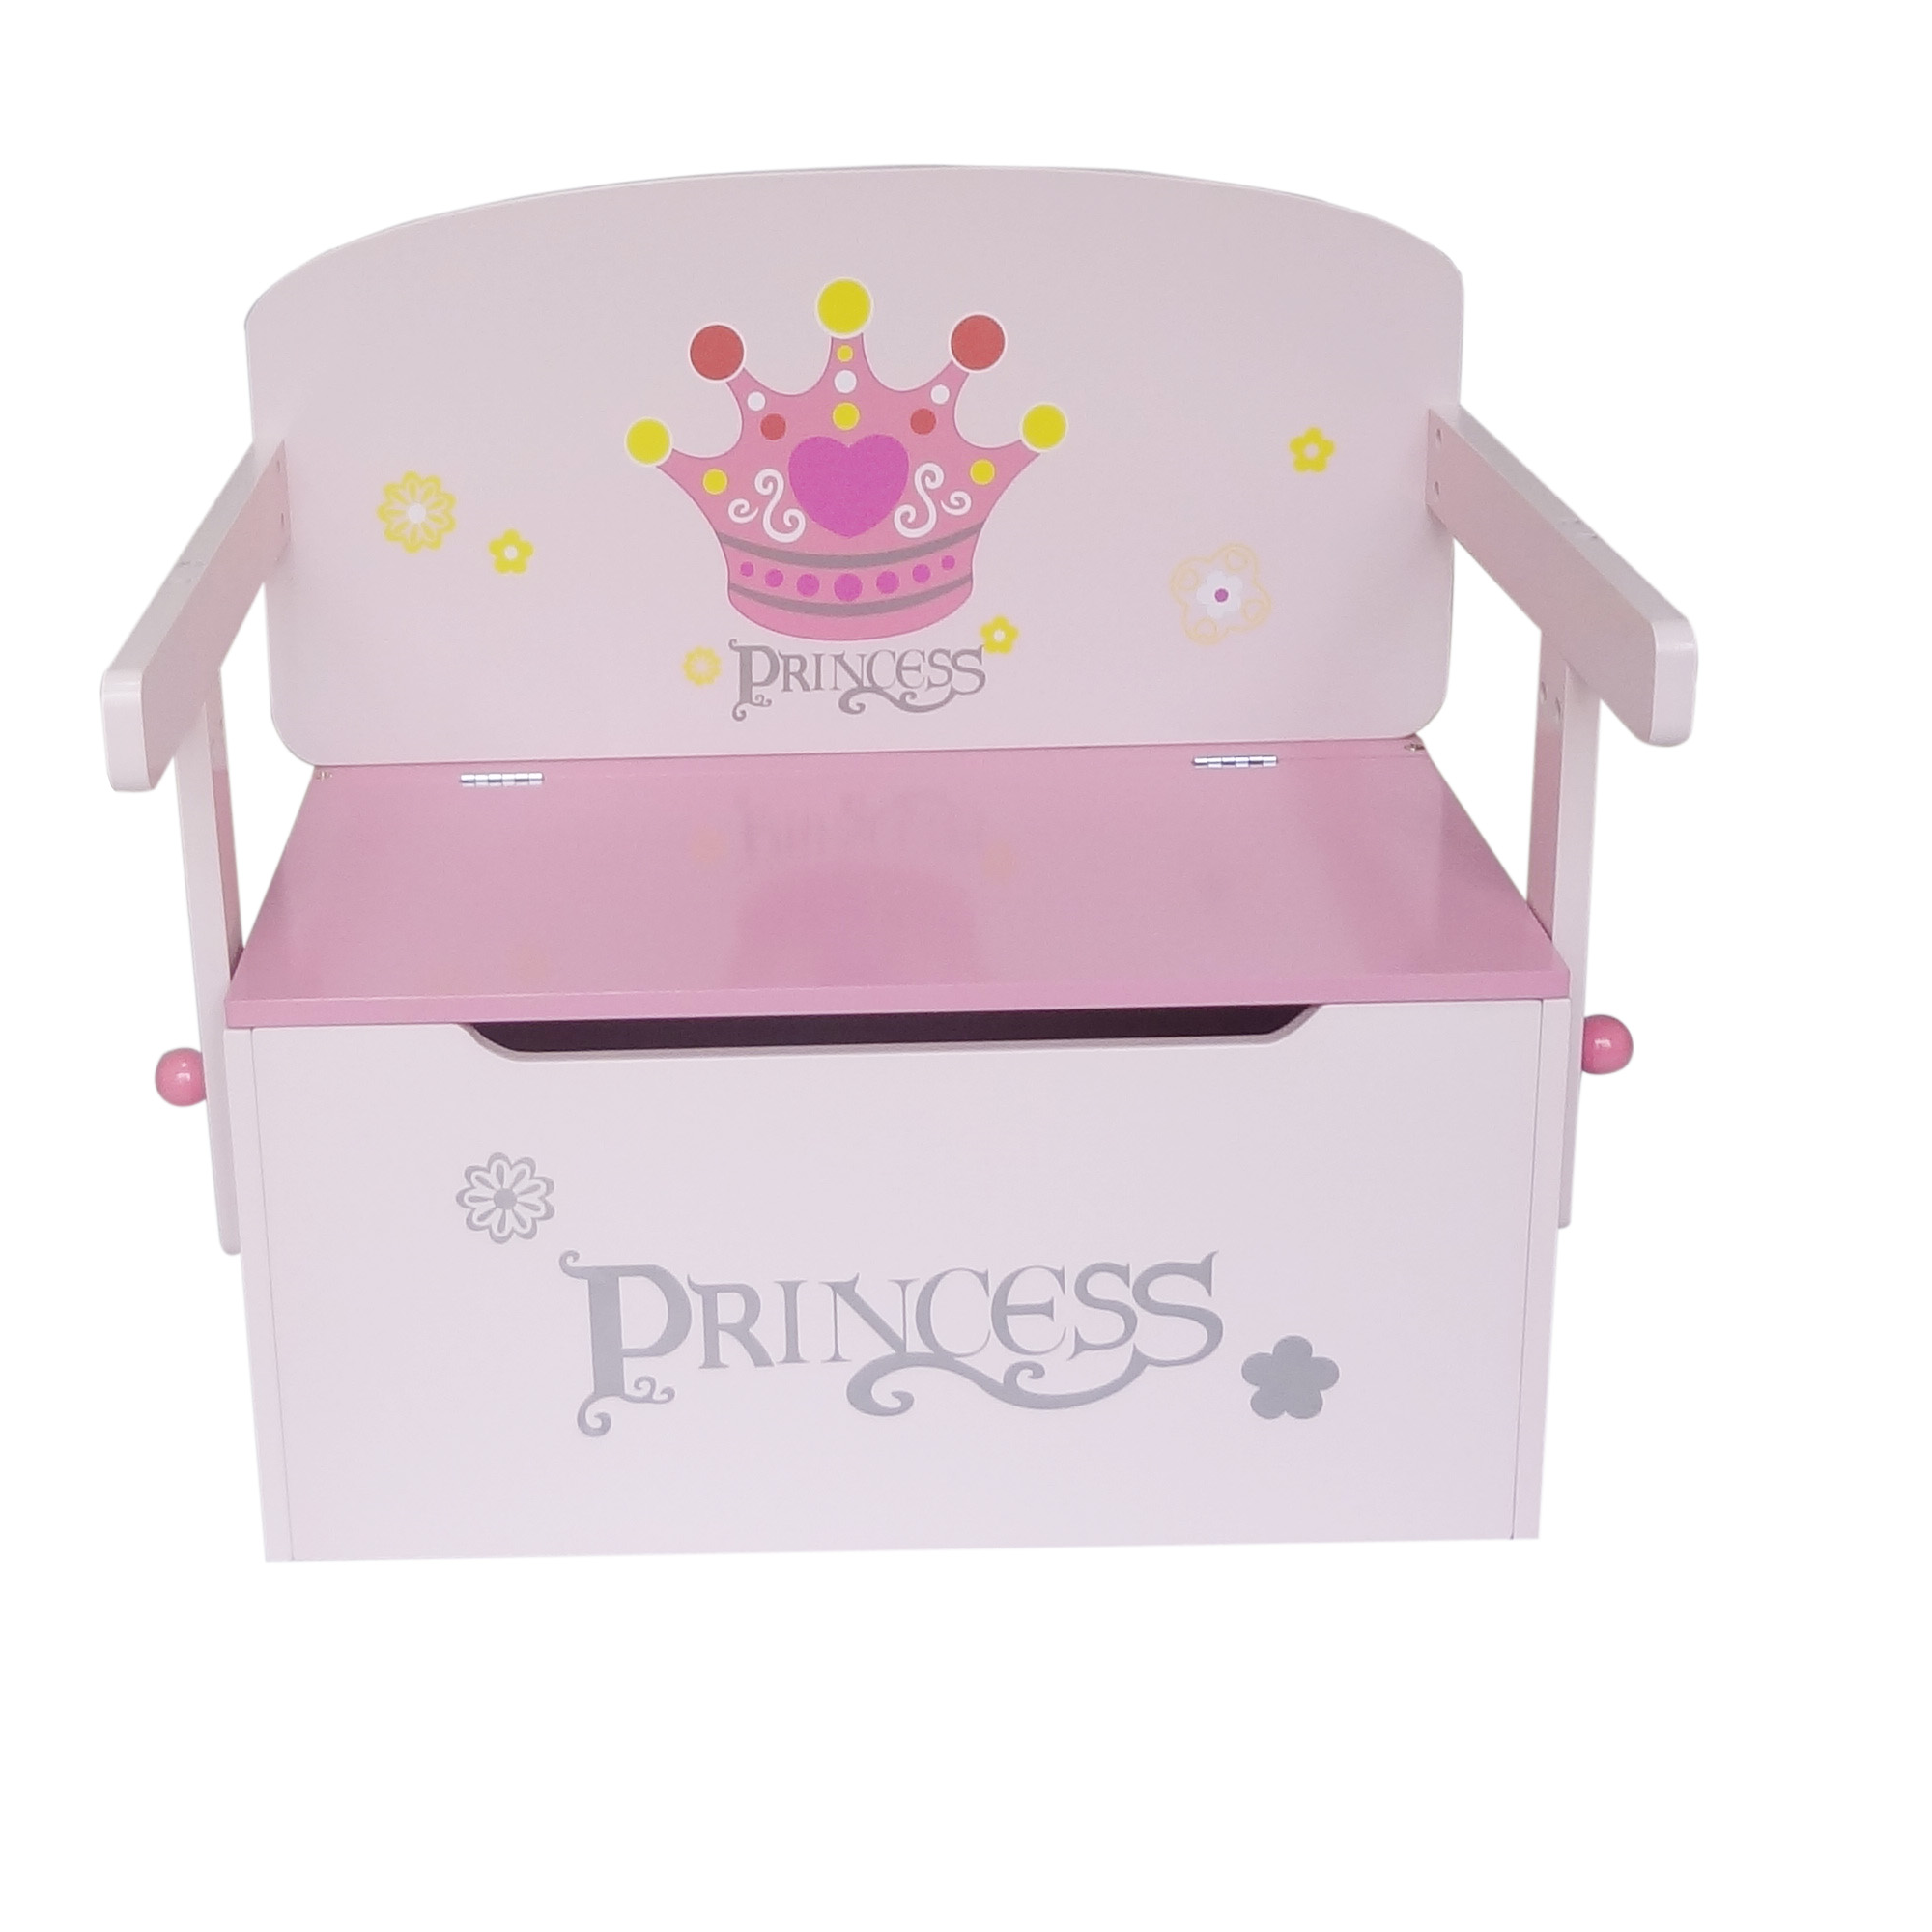 Superb Kiddi Style Childrens Princess Wooden Toy Storage Box And Ocoug Best Dining Table And Chair Ideas Images Ocougorg